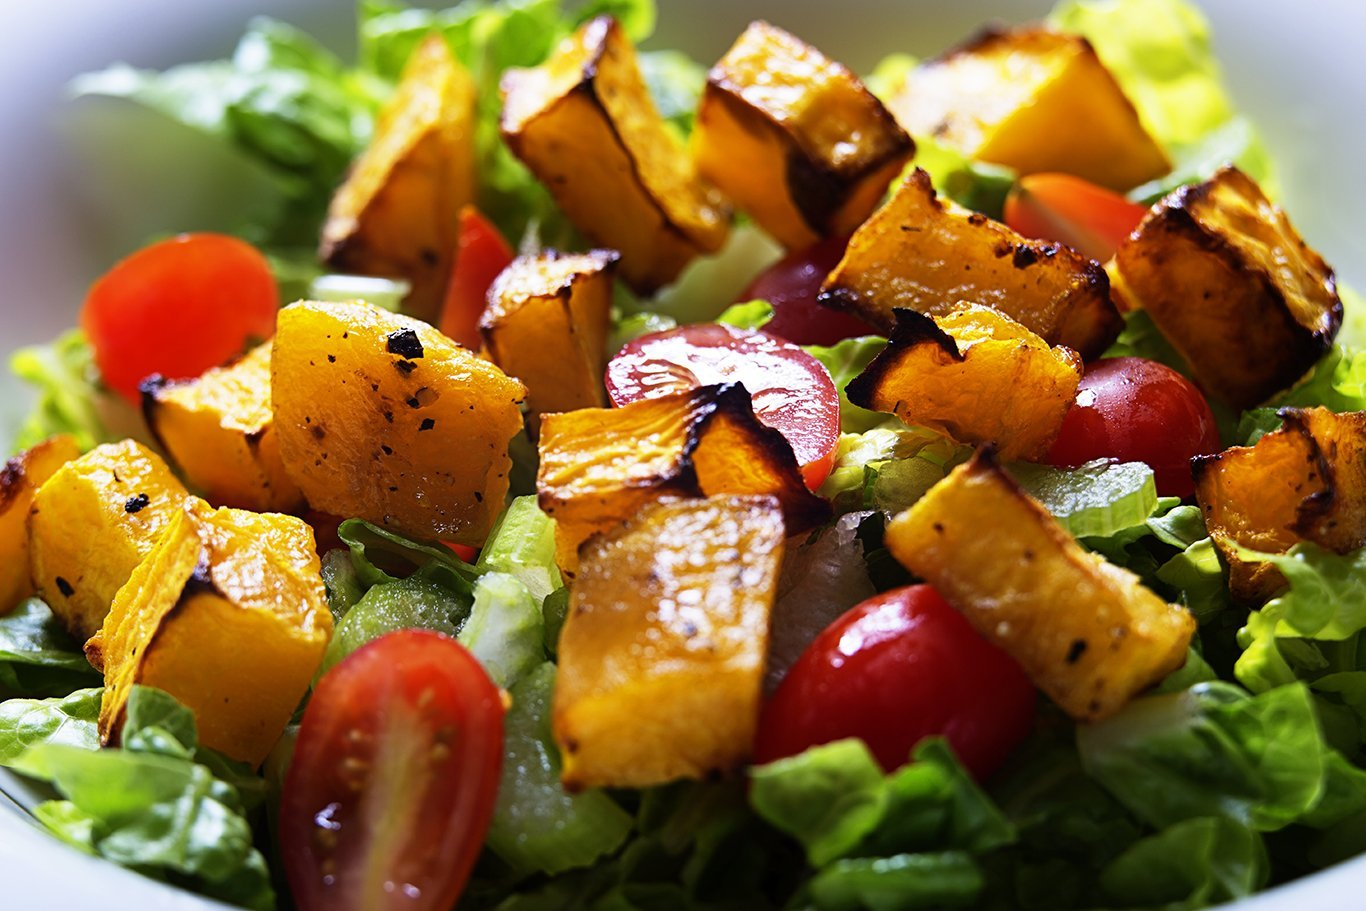 Roasted Butternut Squash and Tomatoes Salad with Cranberry-Orange Vinaigrette